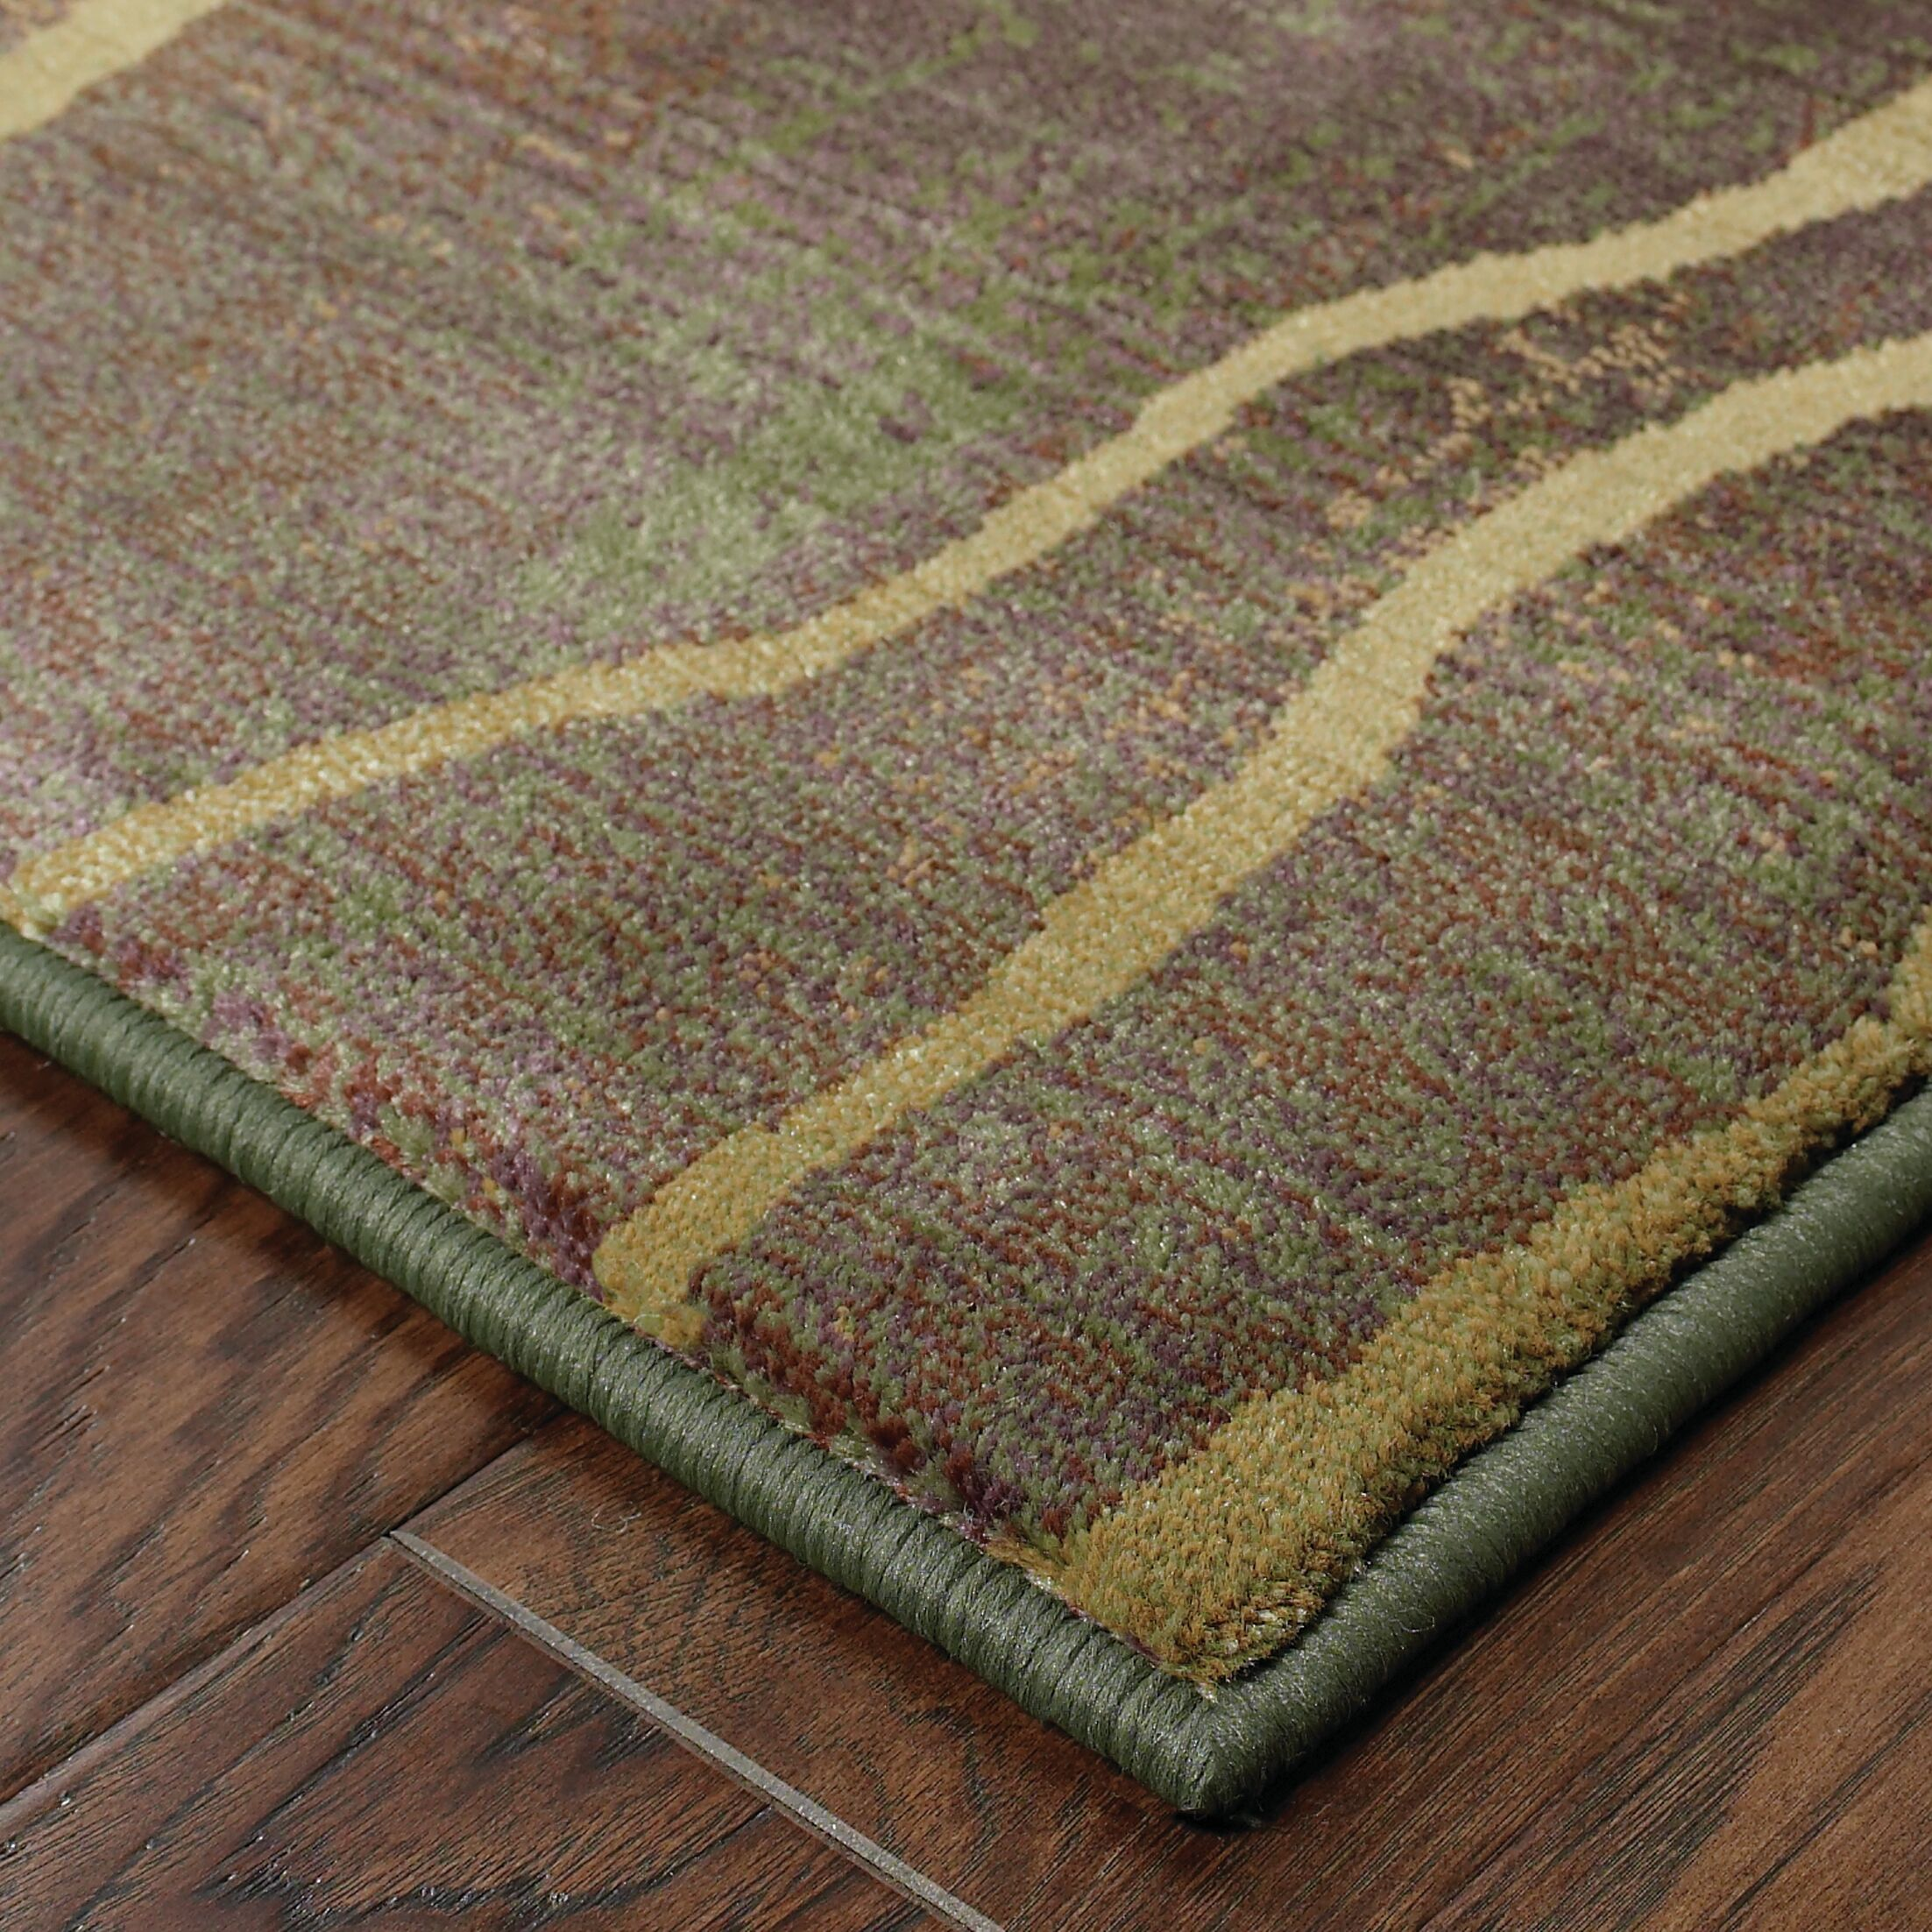 Burkhardt Area Rug Rug Size: Rectangle 4' x 5'9